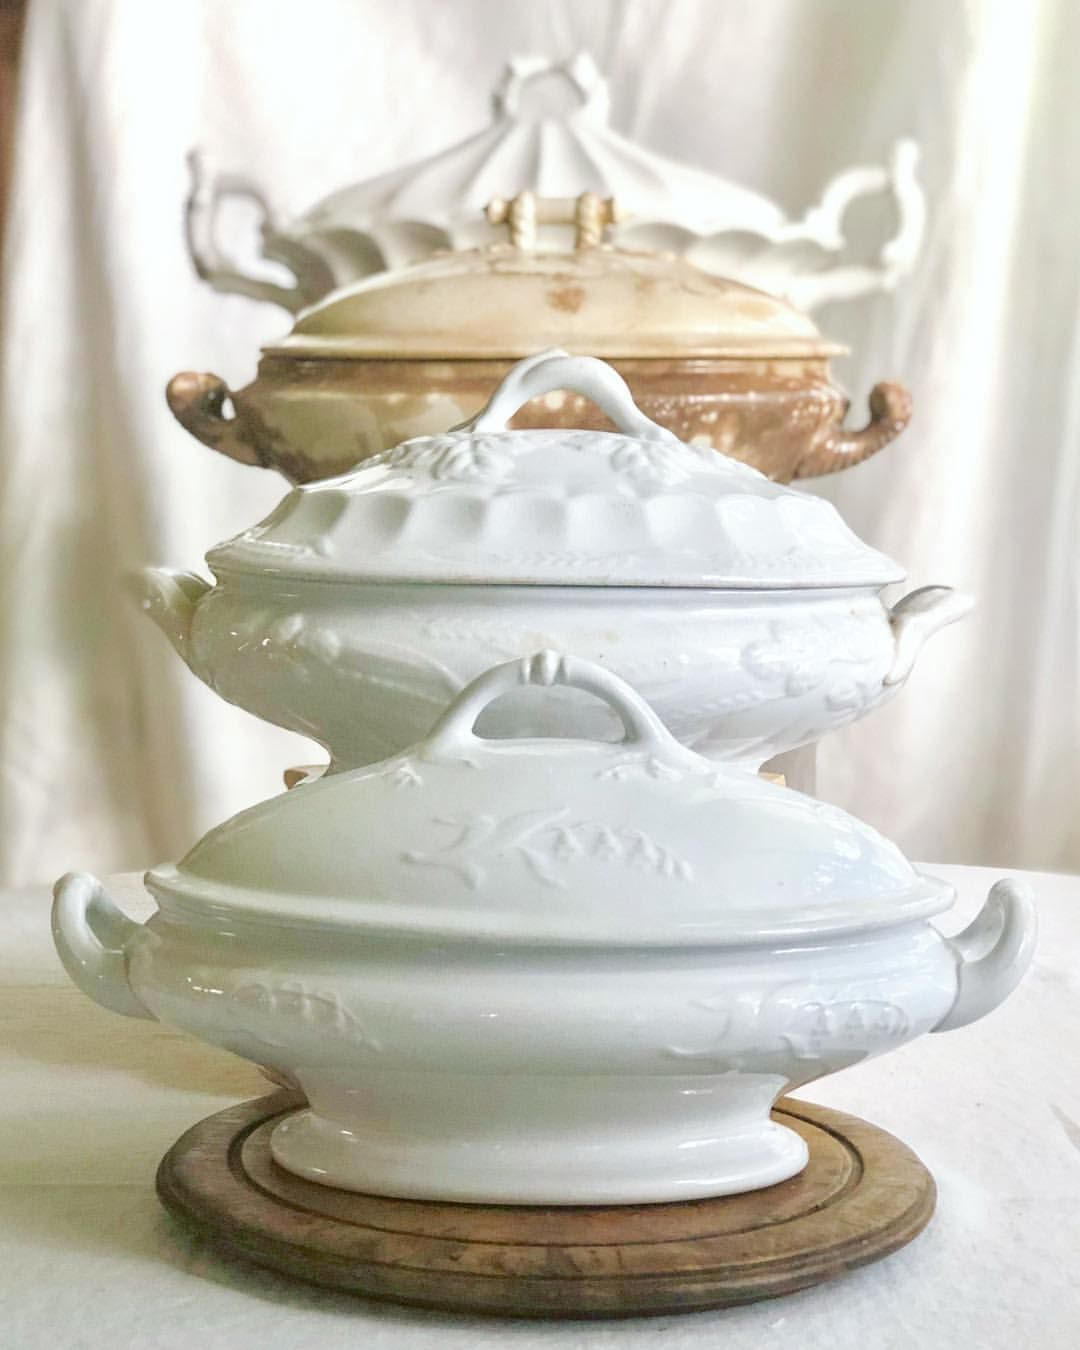 Pin By Diana Vetter Sagir On My Love Of White Dishes Shabby Chic Home Accessories Shabby Chic Homes Vintage Ironstone